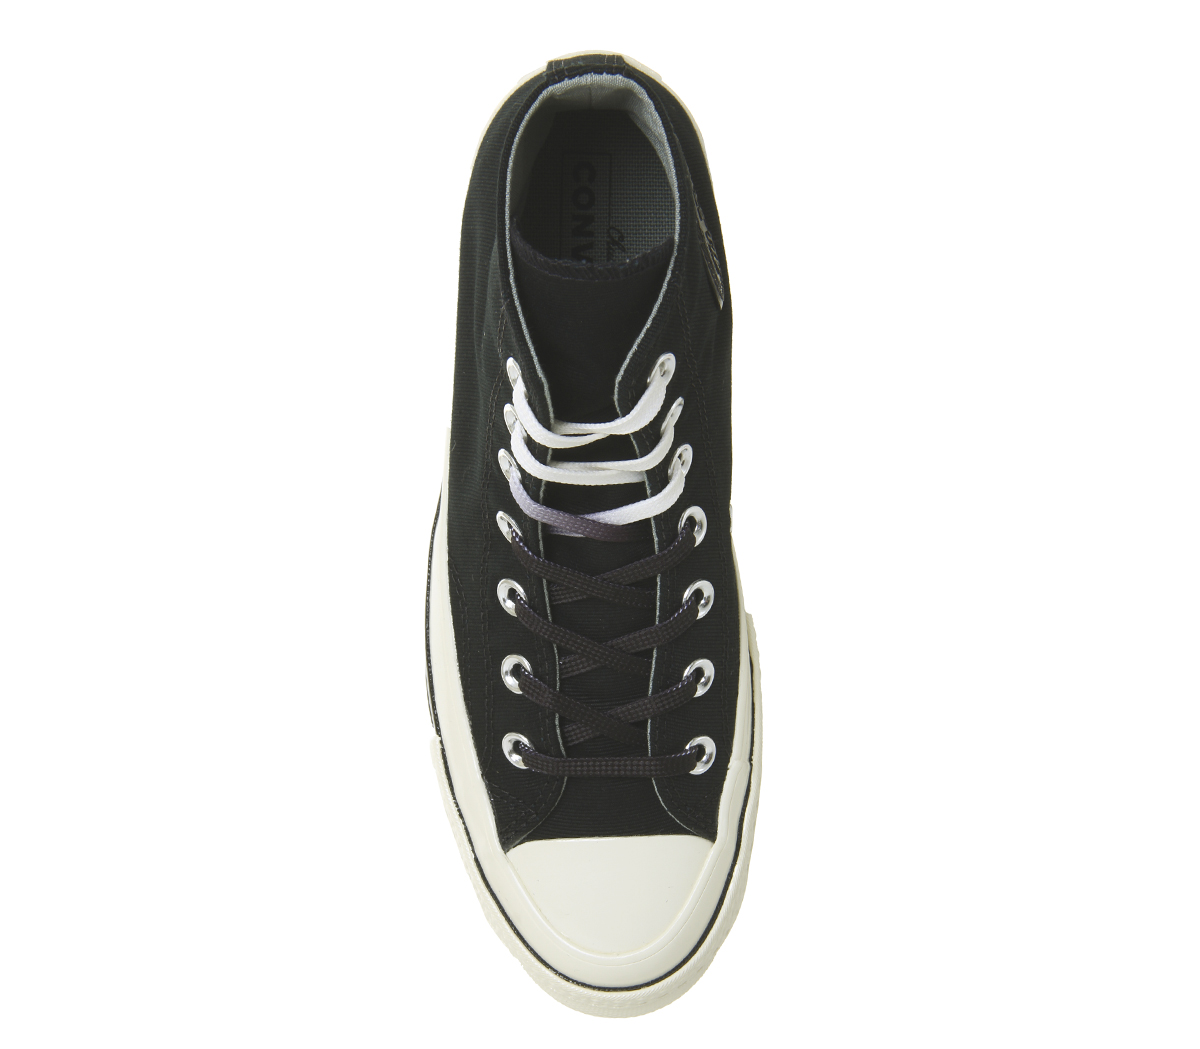 Herren Converse All Star Hi 70 70 70 Trainers BLACK EGRET SPLIT Trainers Schuhes f8fef7